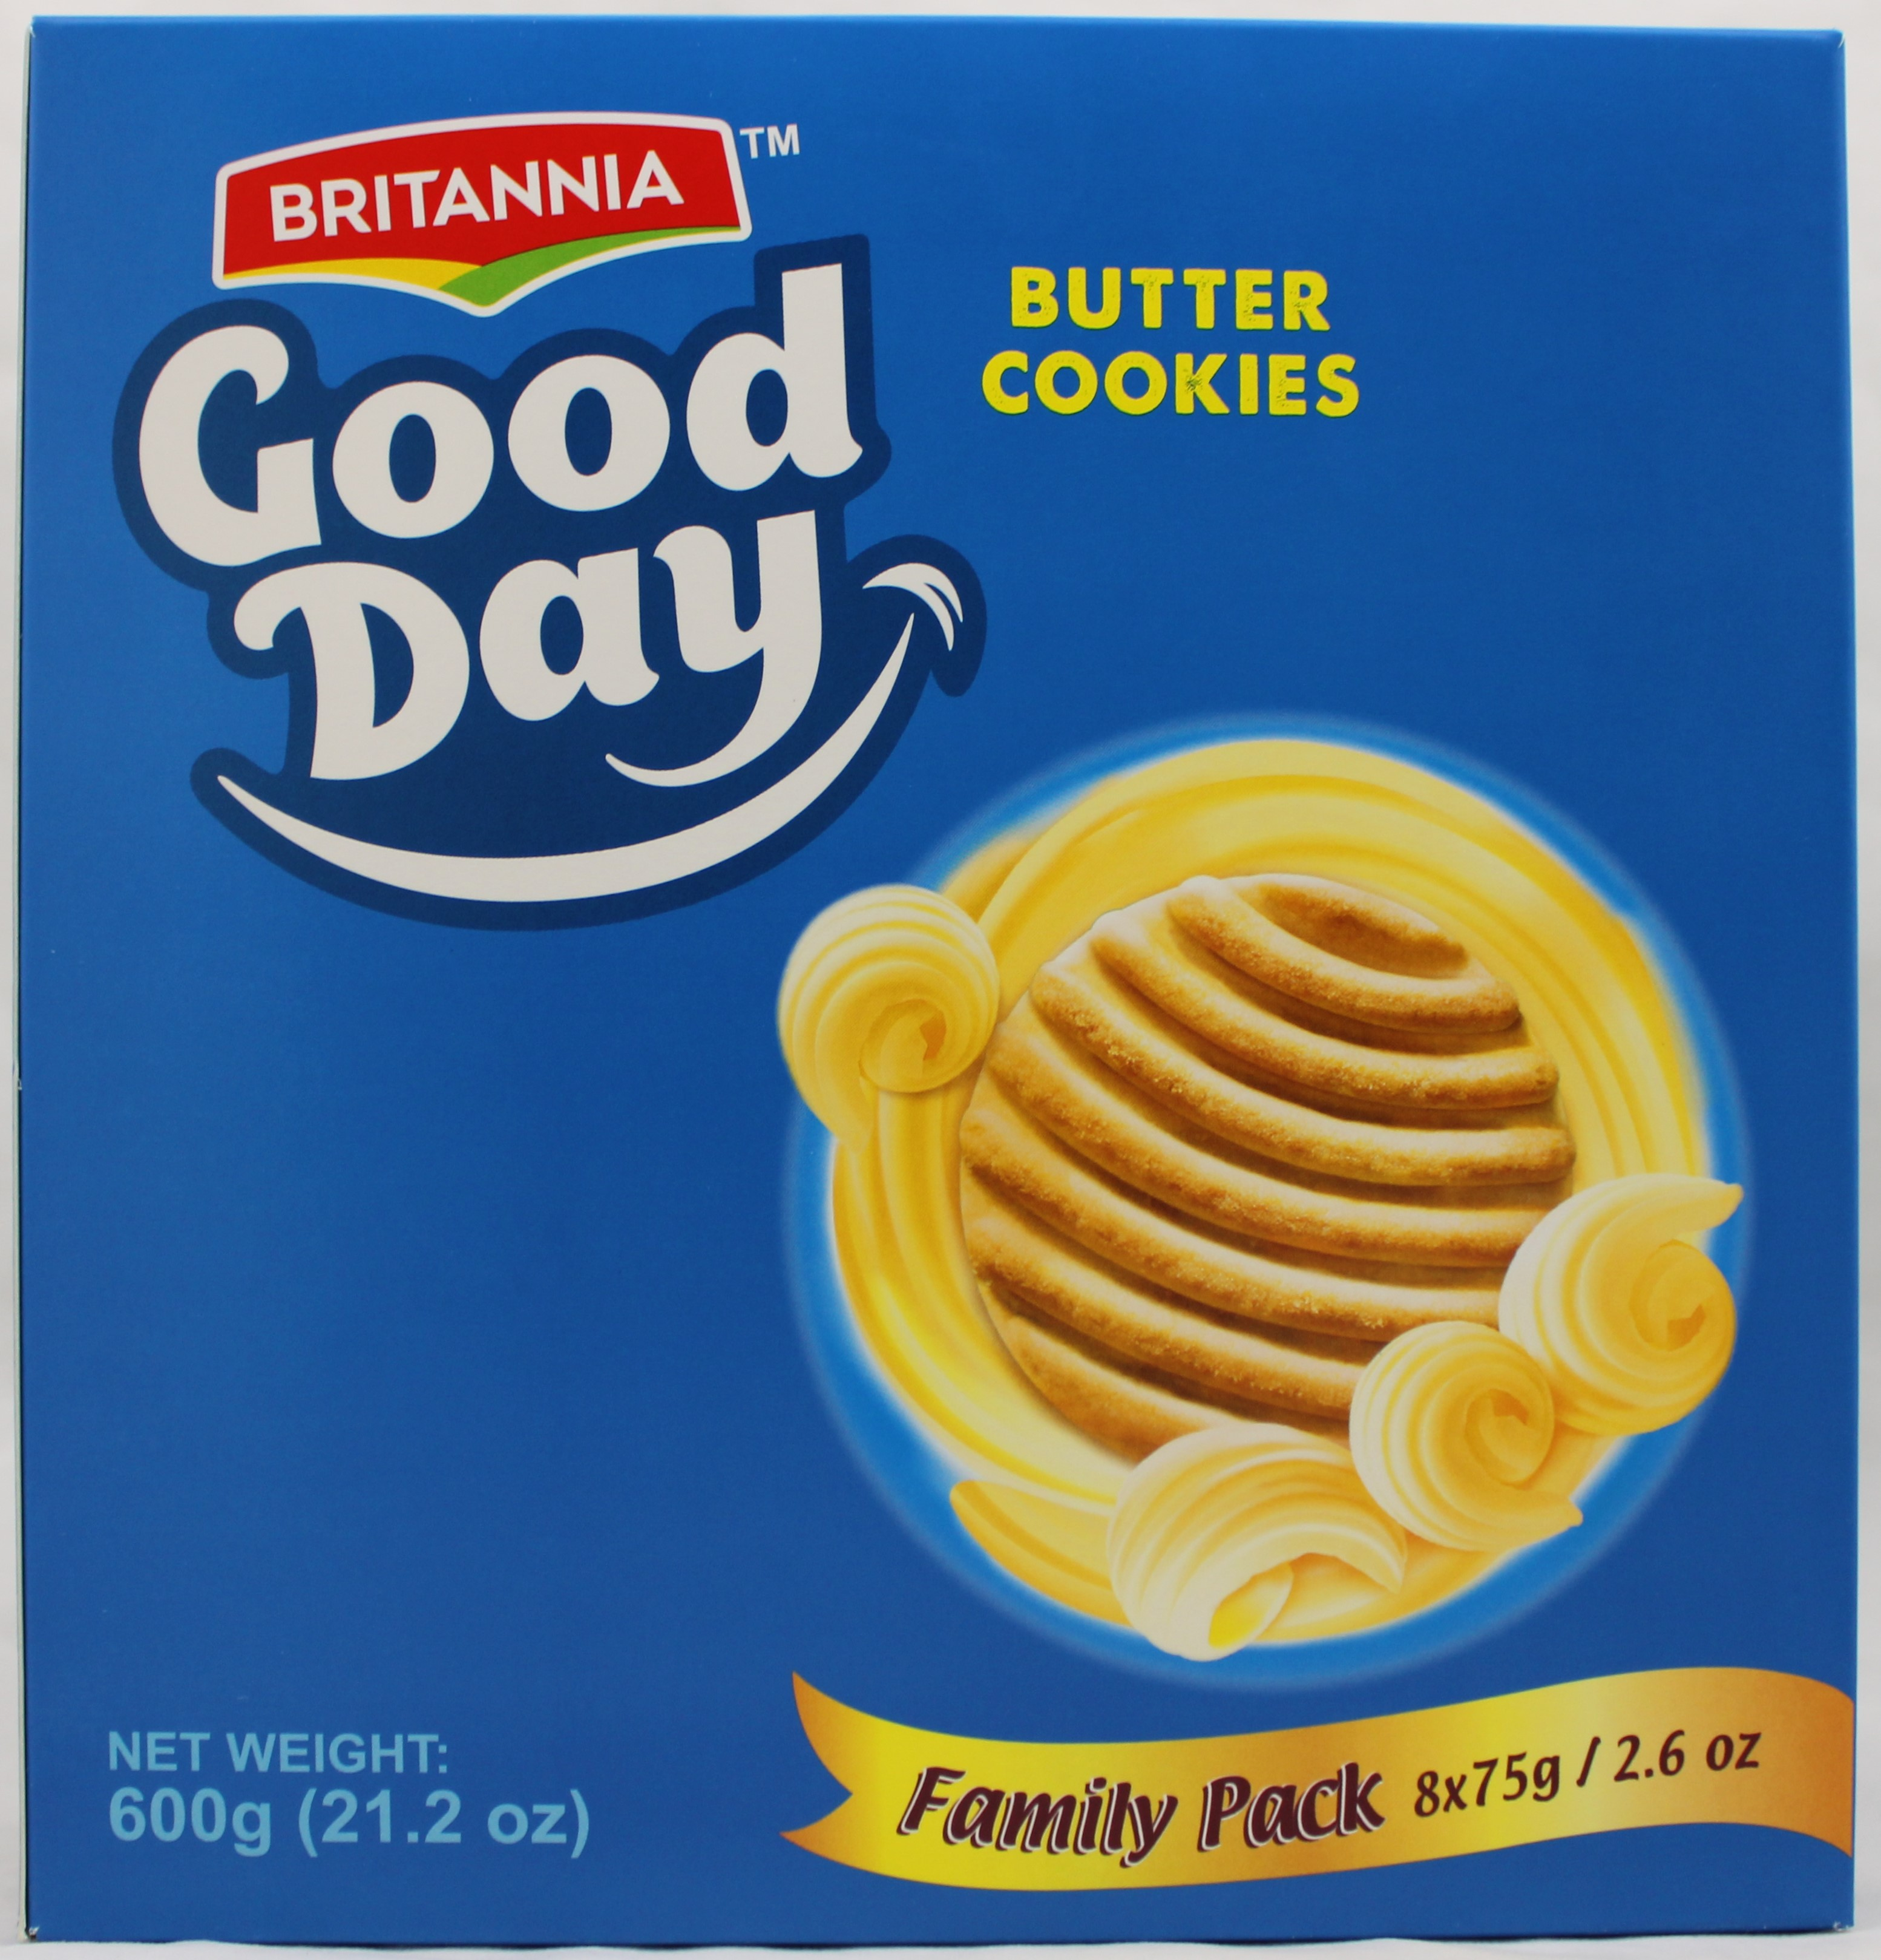 Goodday Butter FP (2.6ozX8)X 6